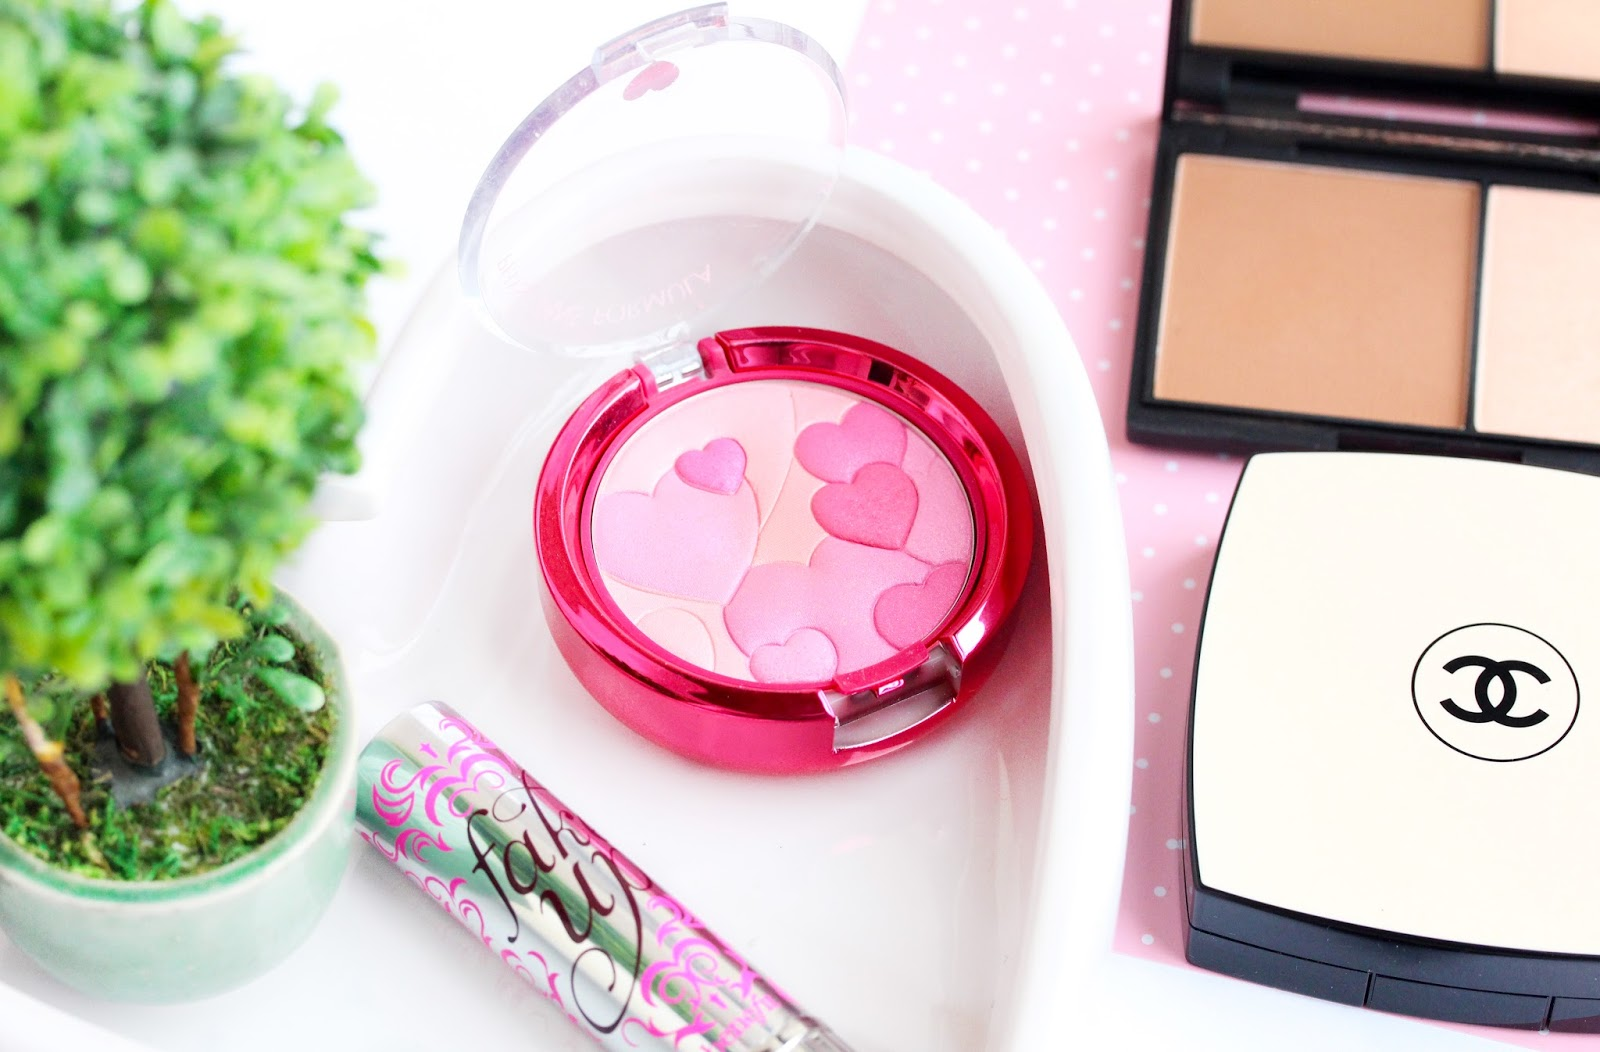 Physicians Formula Happy Booster heart blush